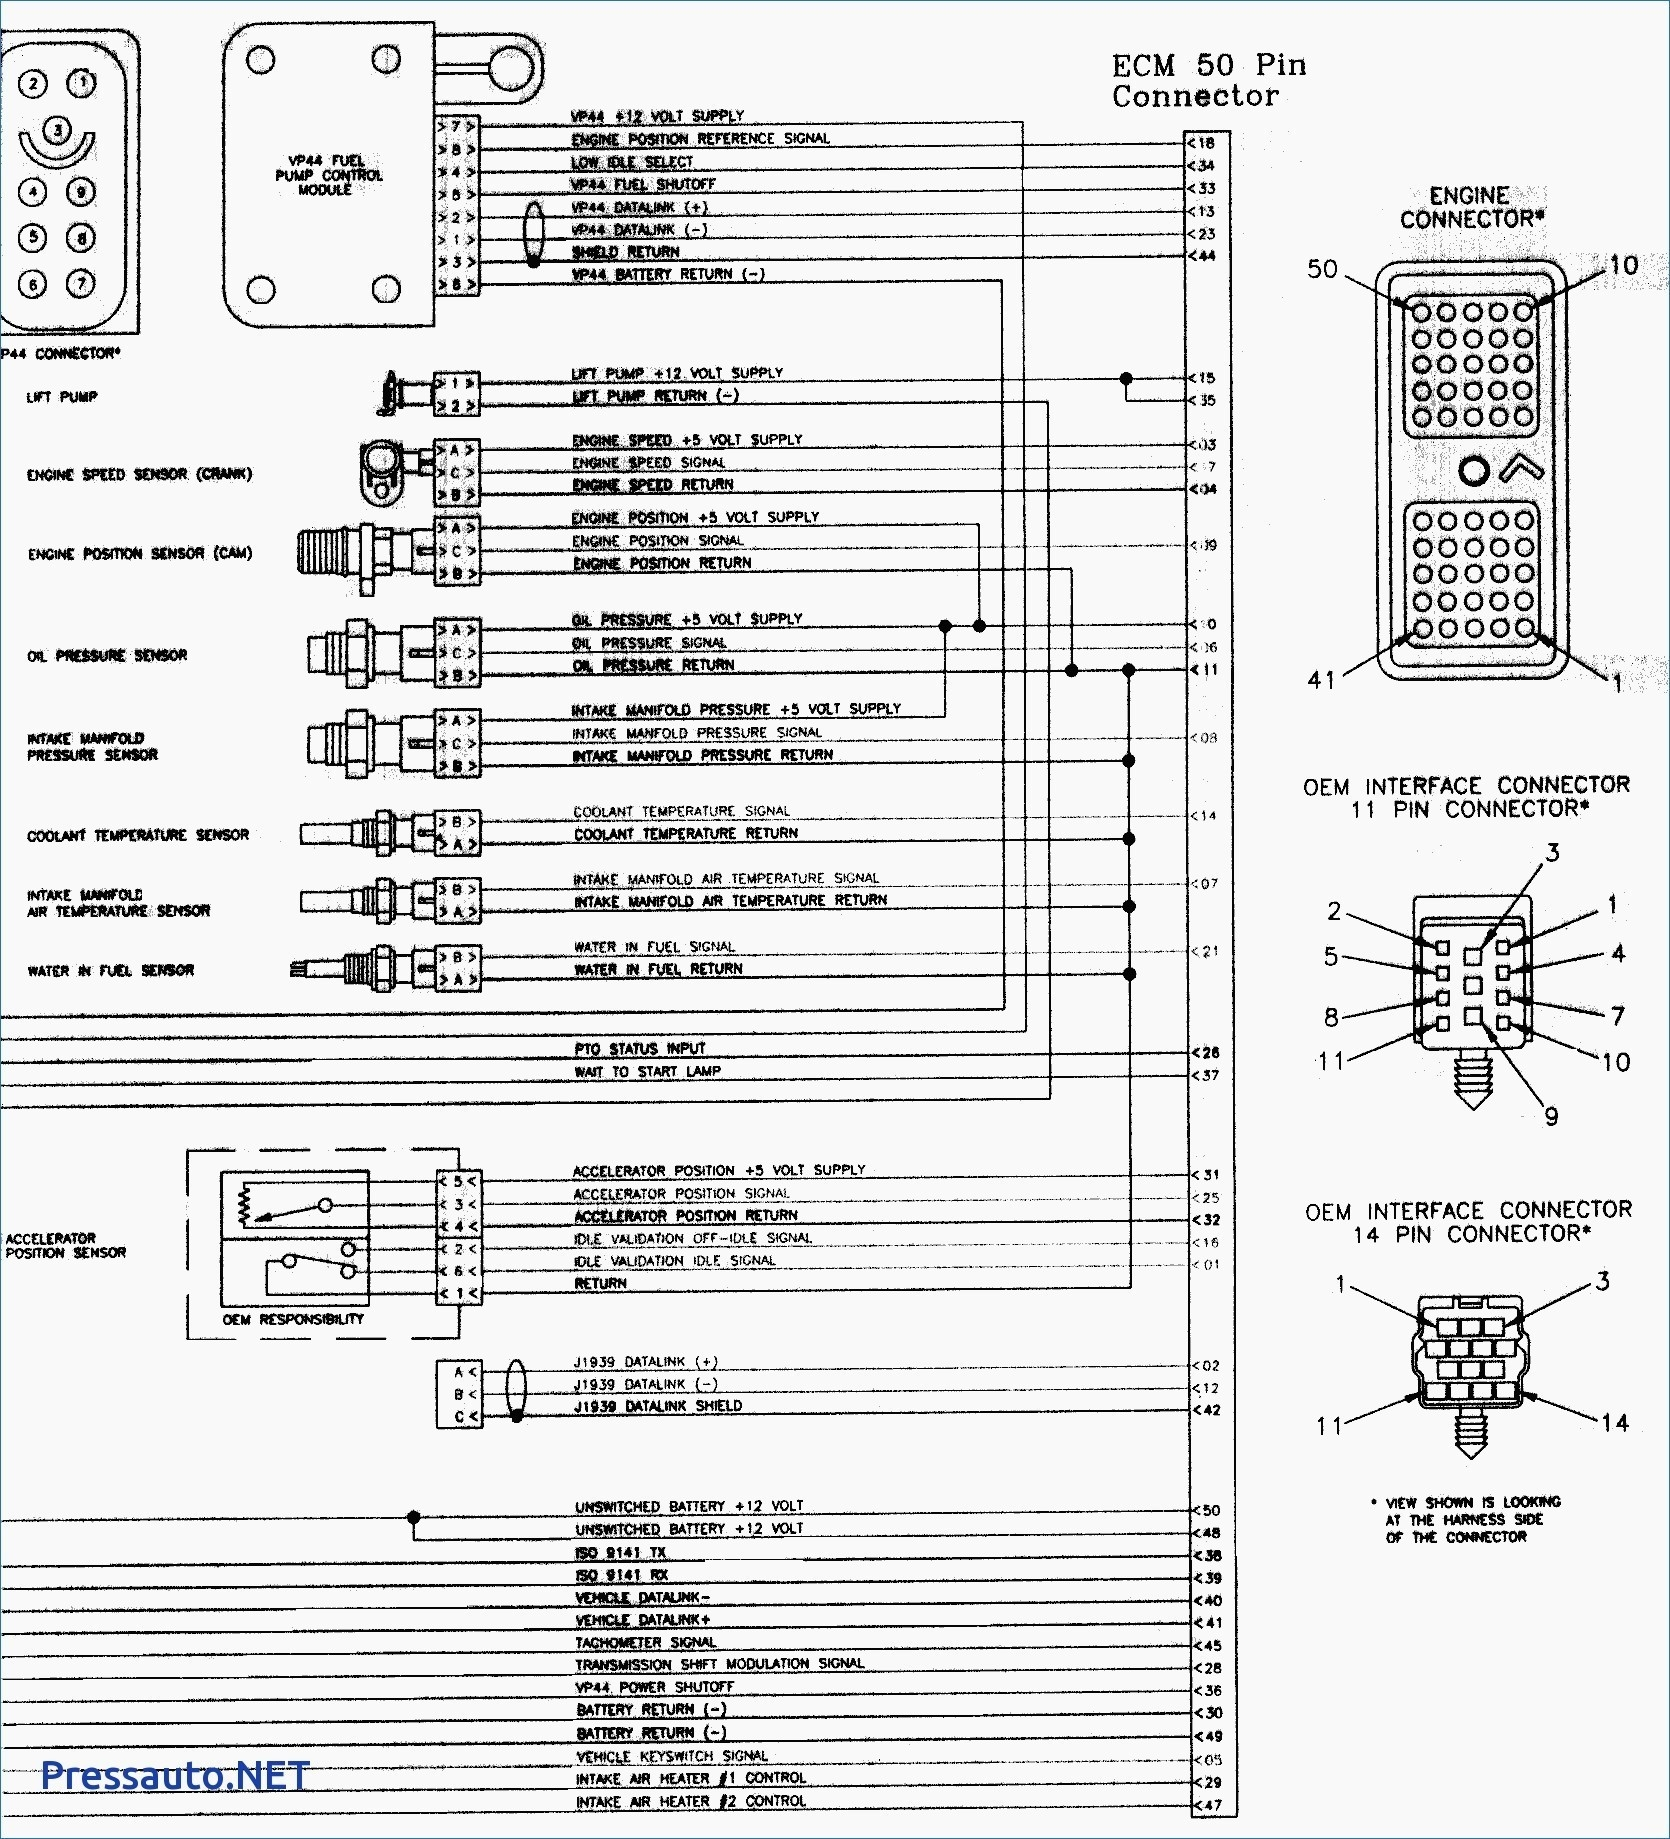 2001 dodge ram 1500 pcm wiring diagram free wiring diagram. Black Bedroom Furniture Sets. Home Design Ideas